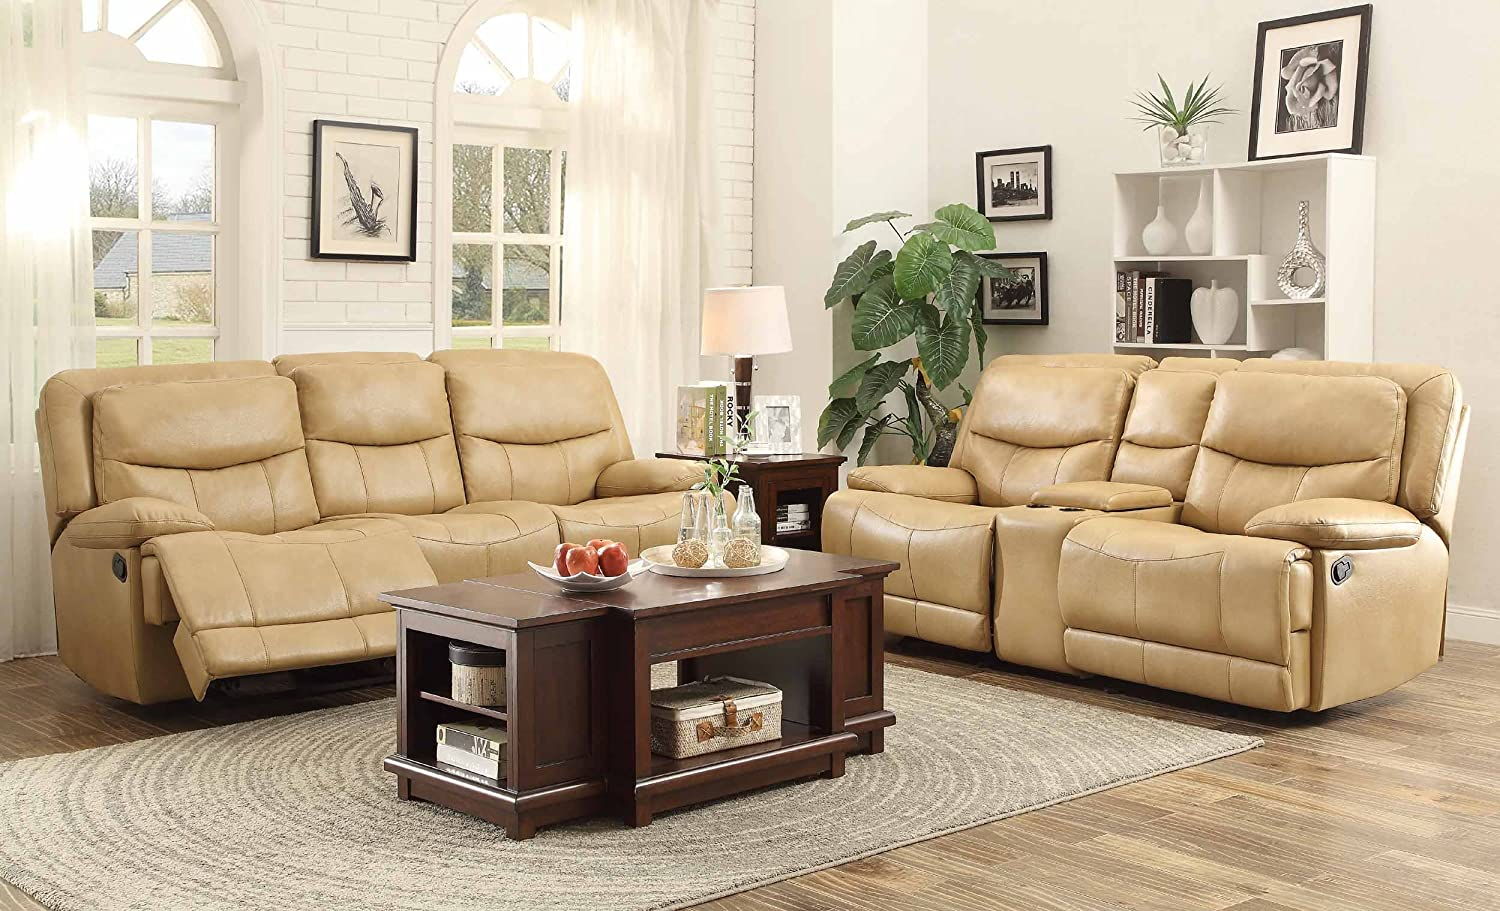 Amazon Com Homelegance 8599tpe 3 Double Reclining Sofa Taupe